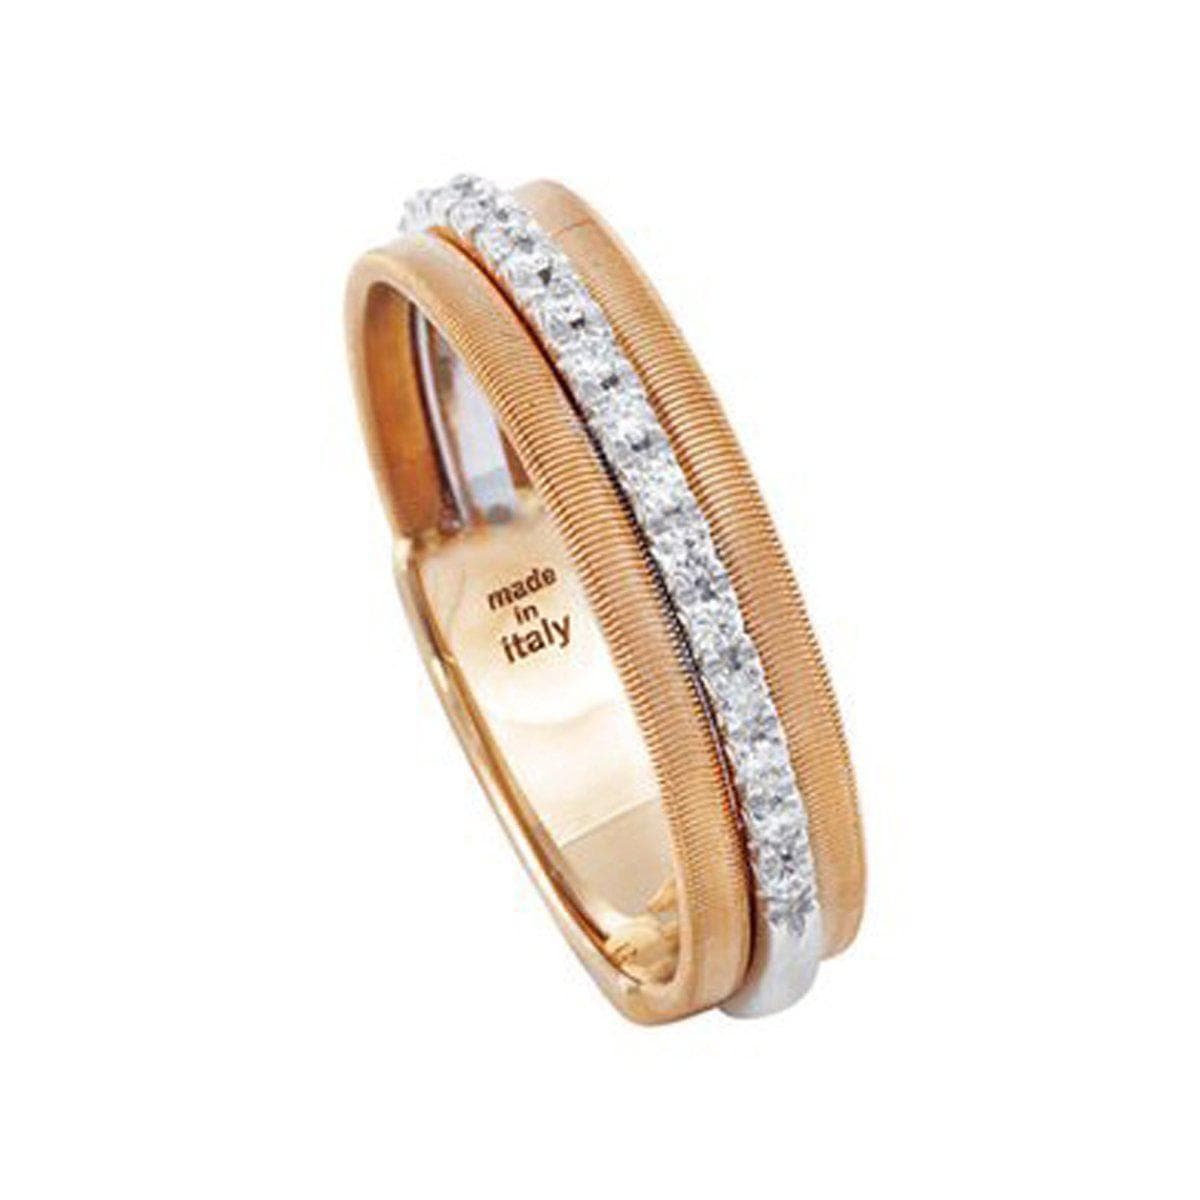 18K Goa Diamond Ring - AG322 B WR - Marco Bicego